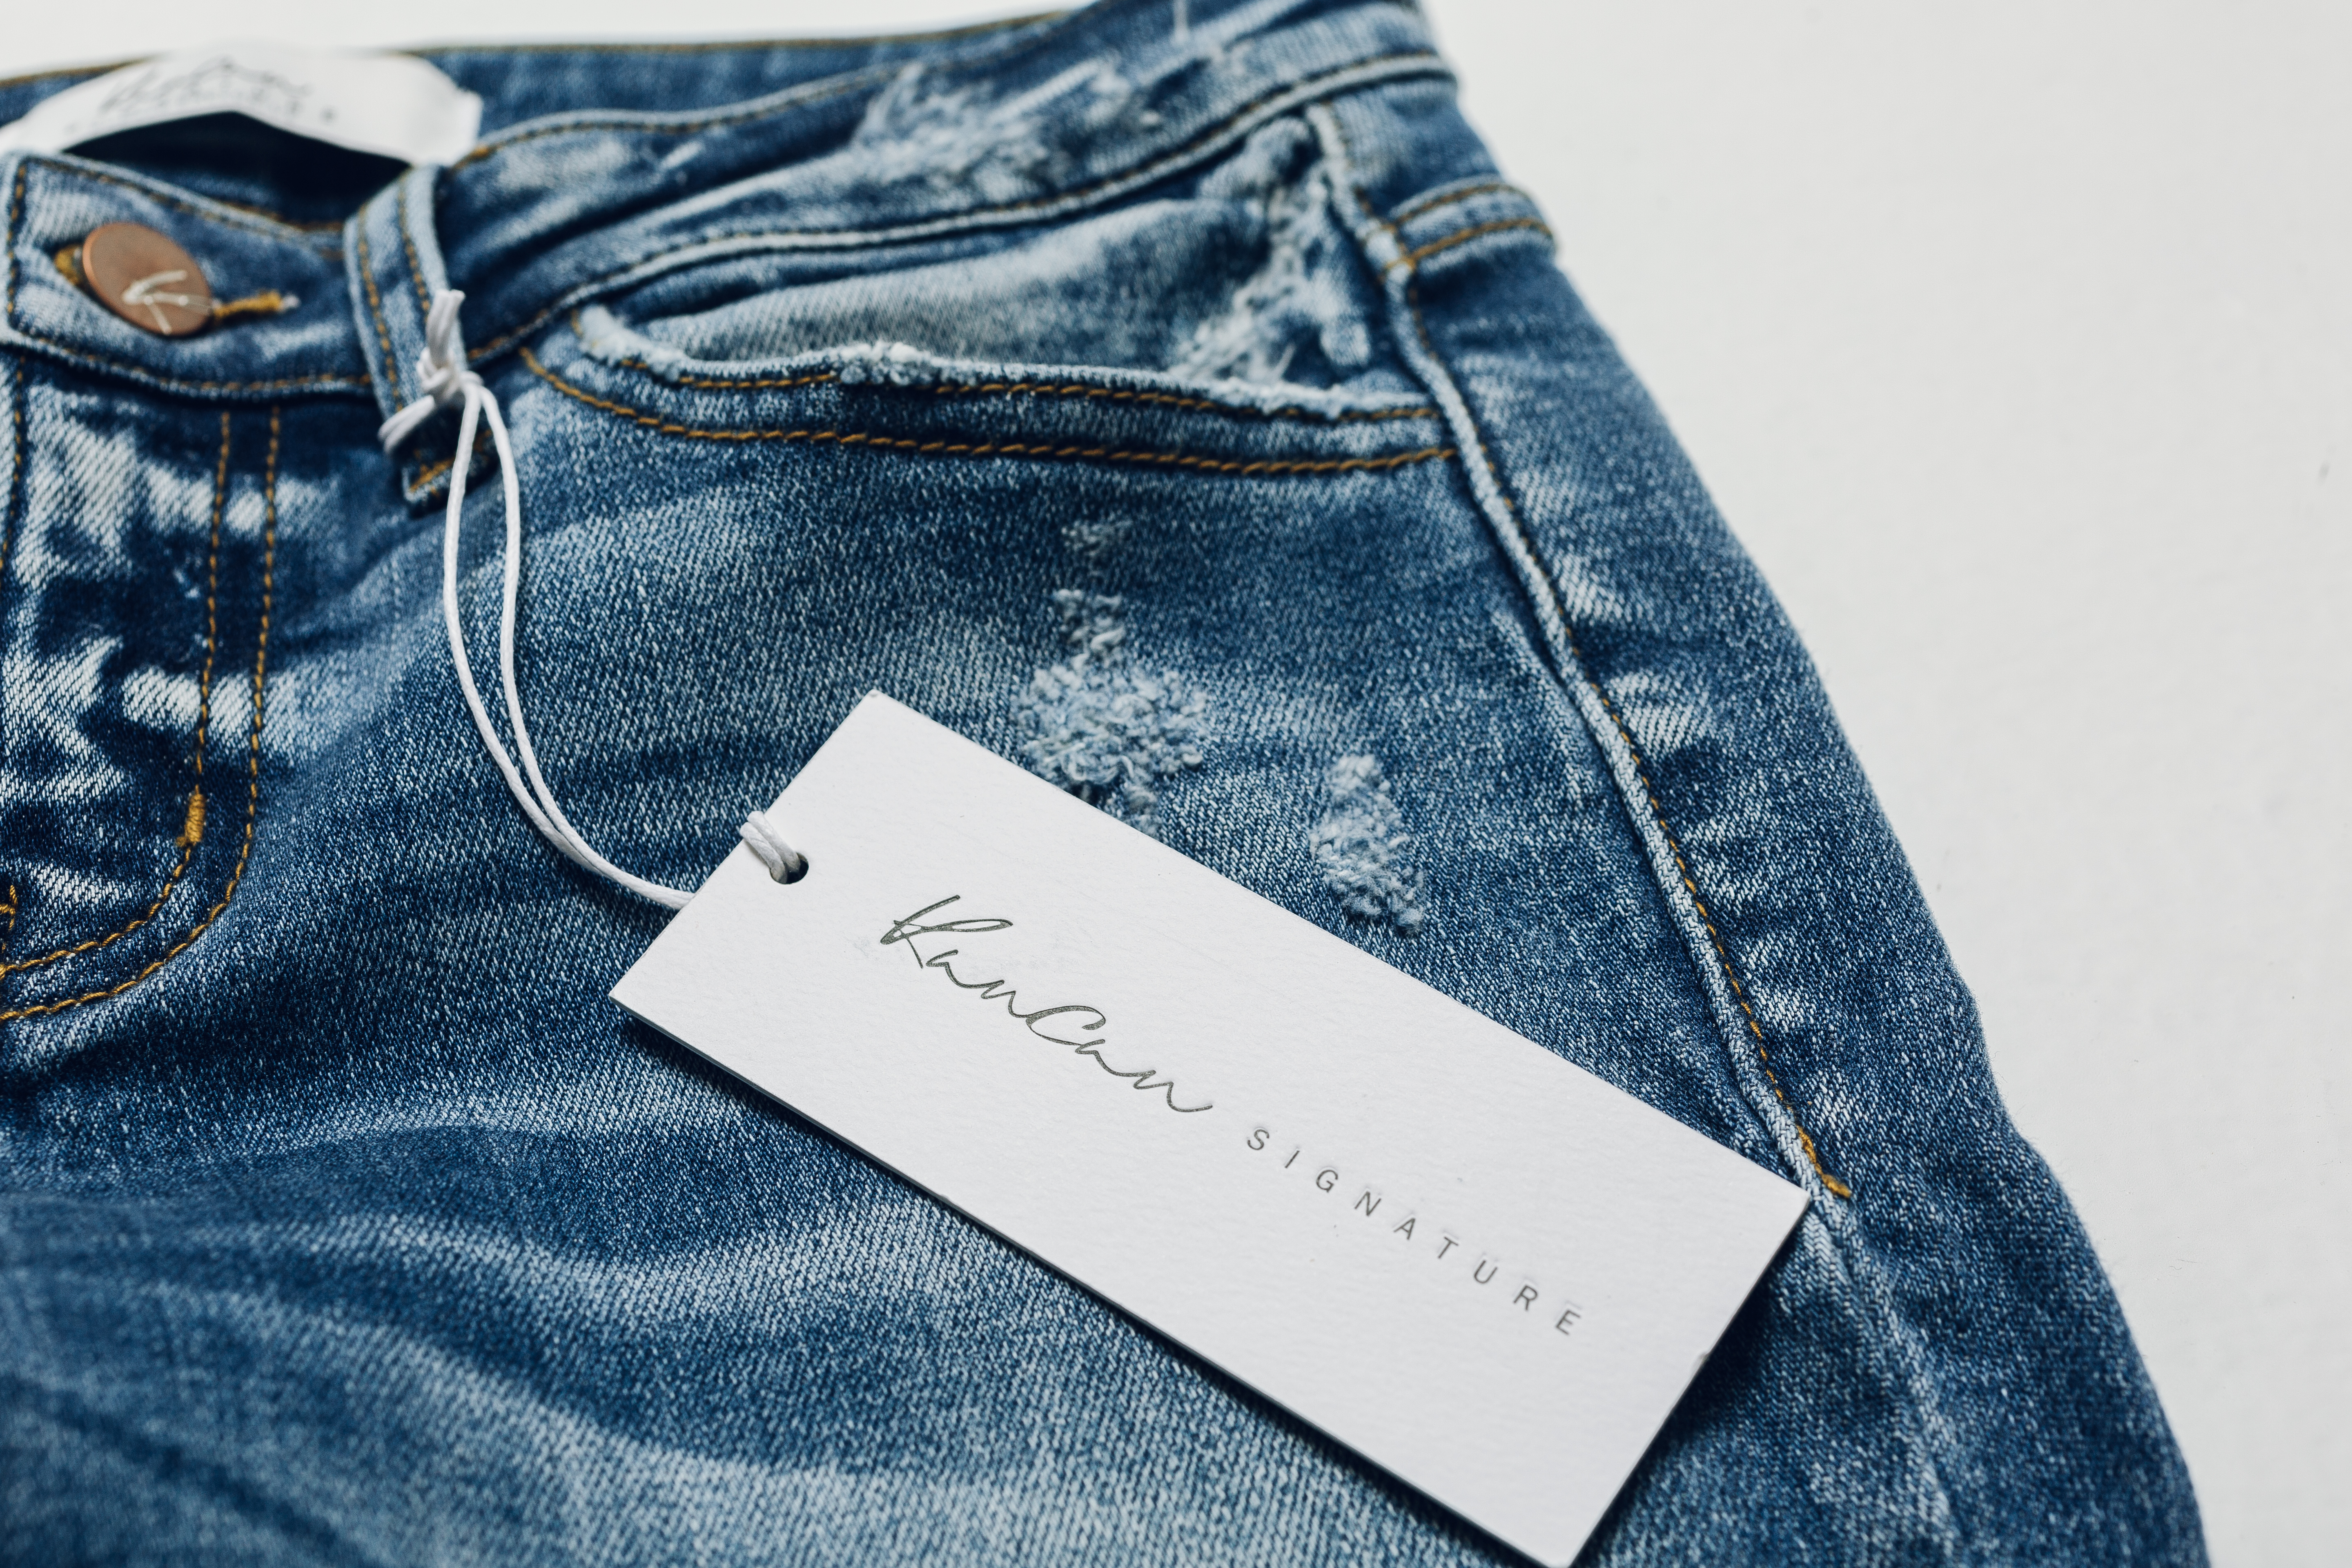 KanCan Signature Jeans only available at Buckle